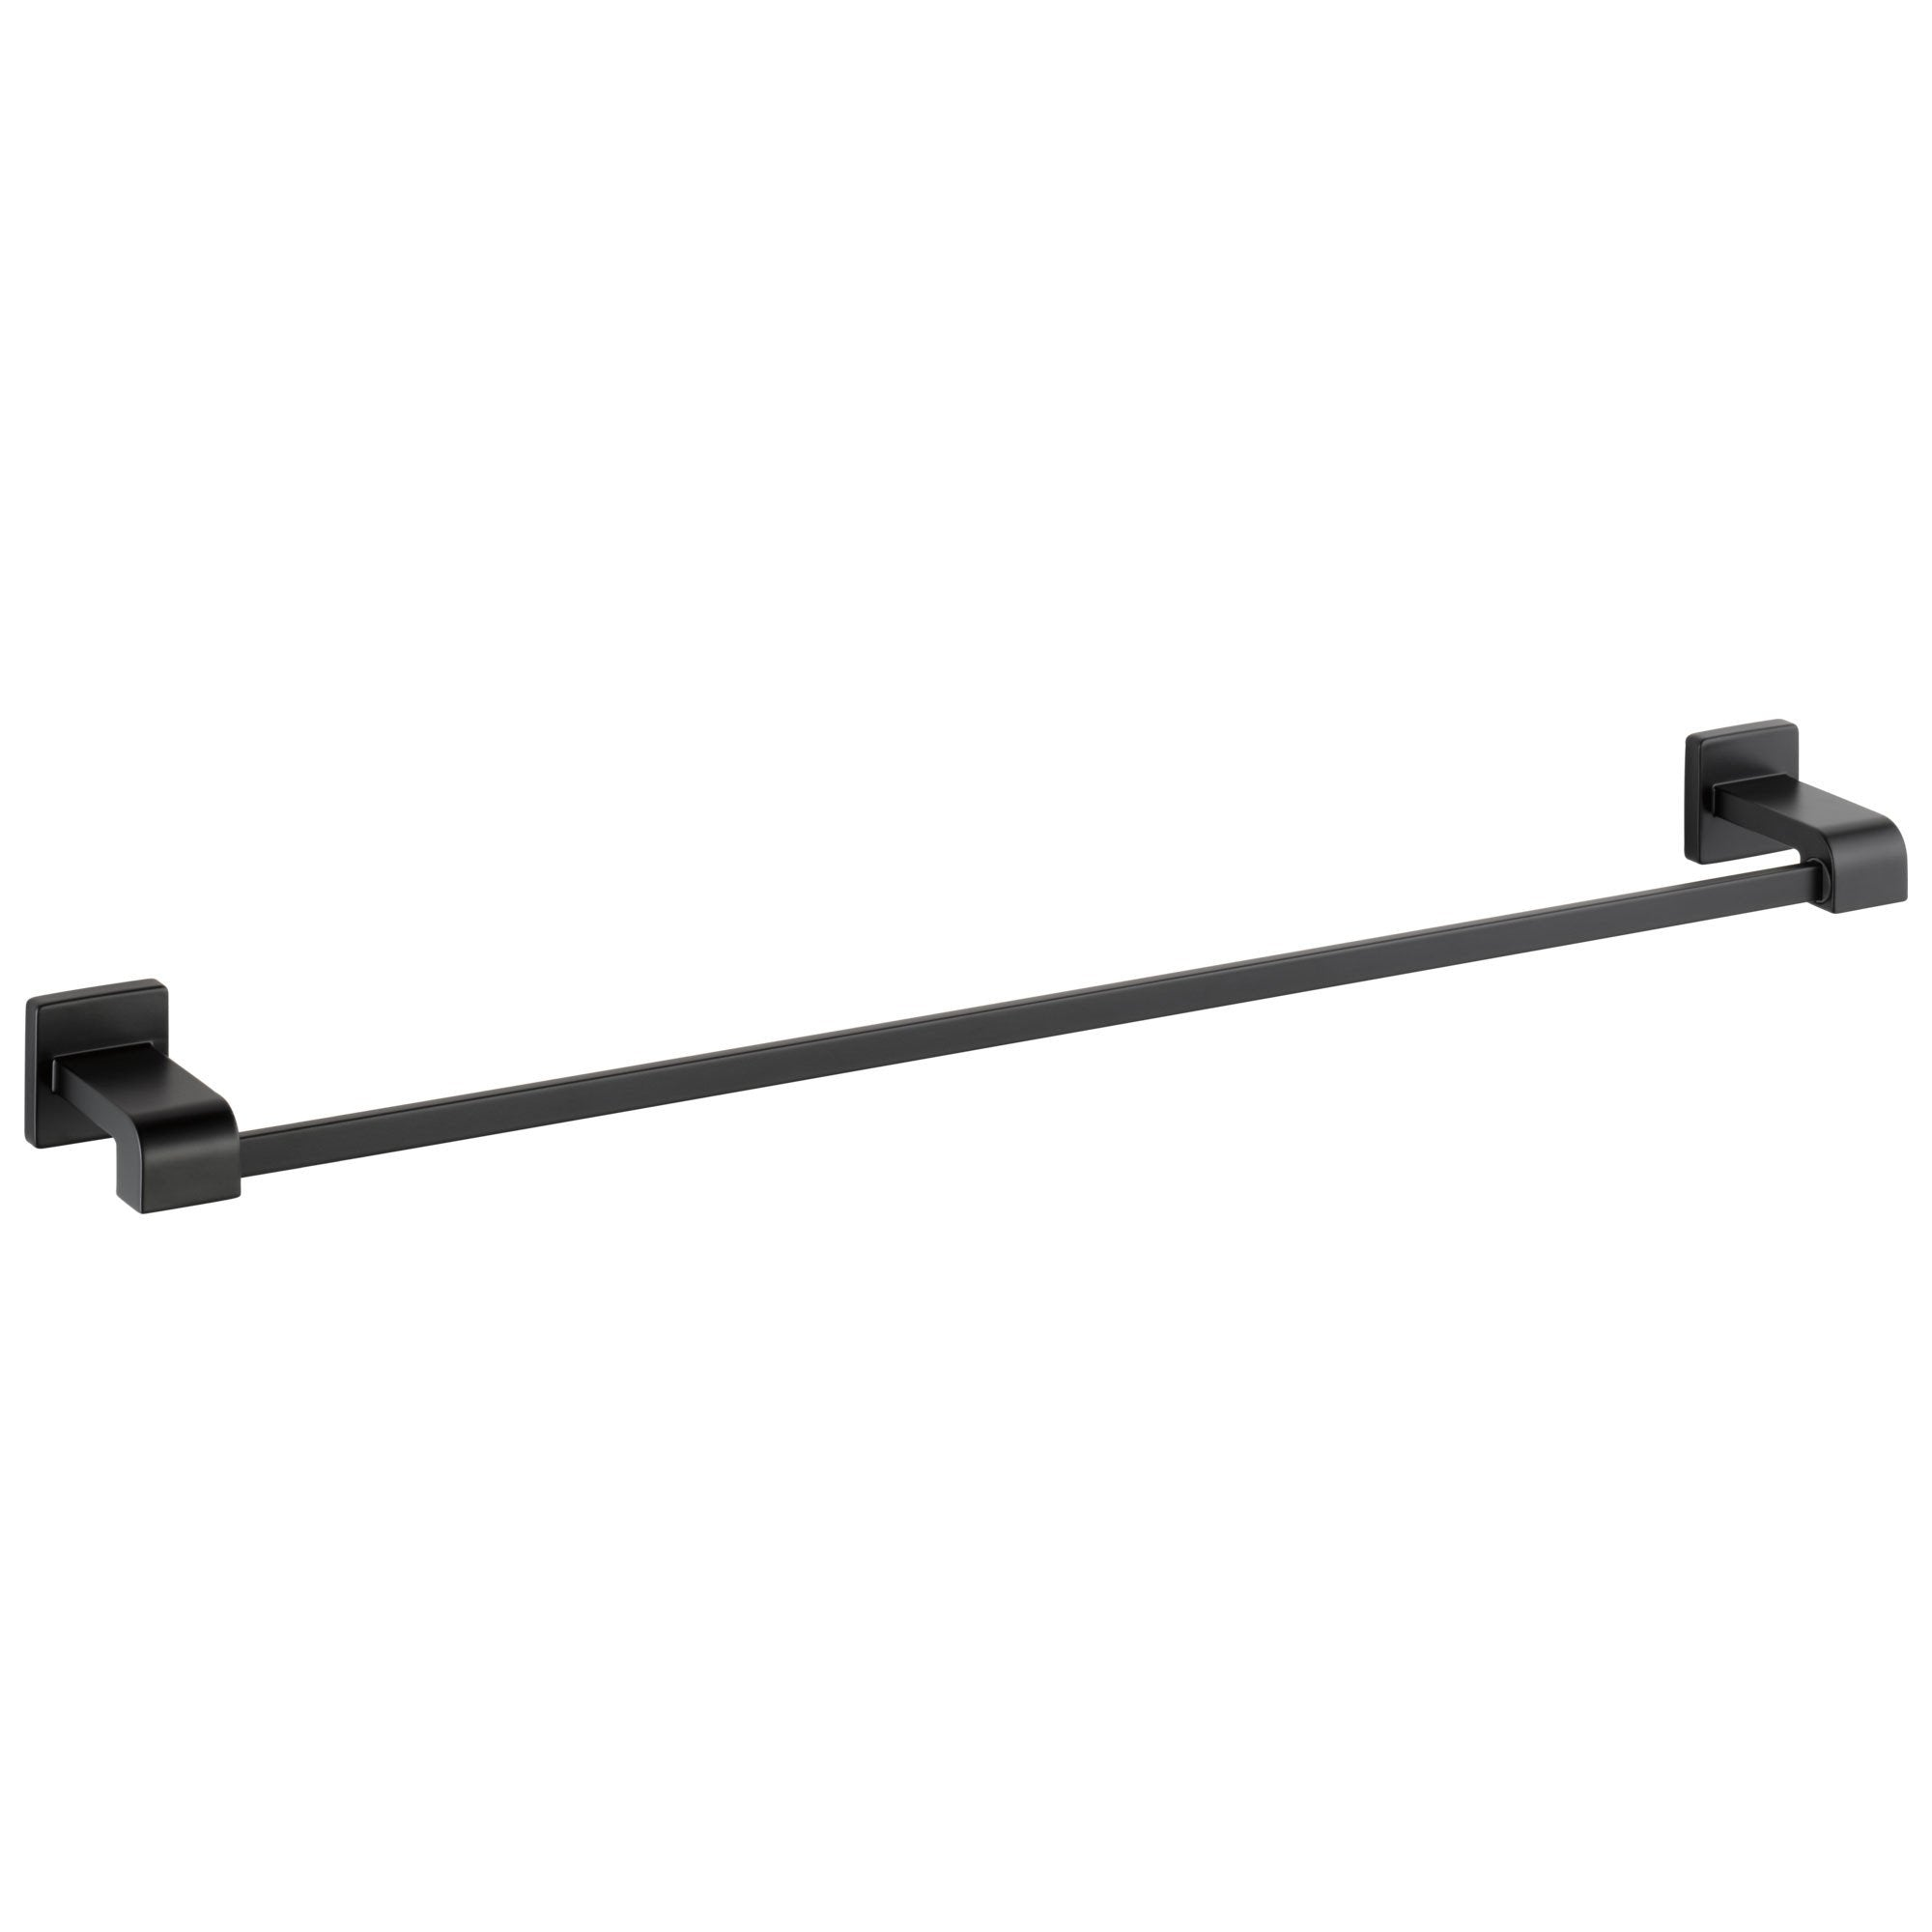 "Delta Ara Collection Matte Black Finish Wall Mount 30"" Long Single Towel Bar D77530BL"